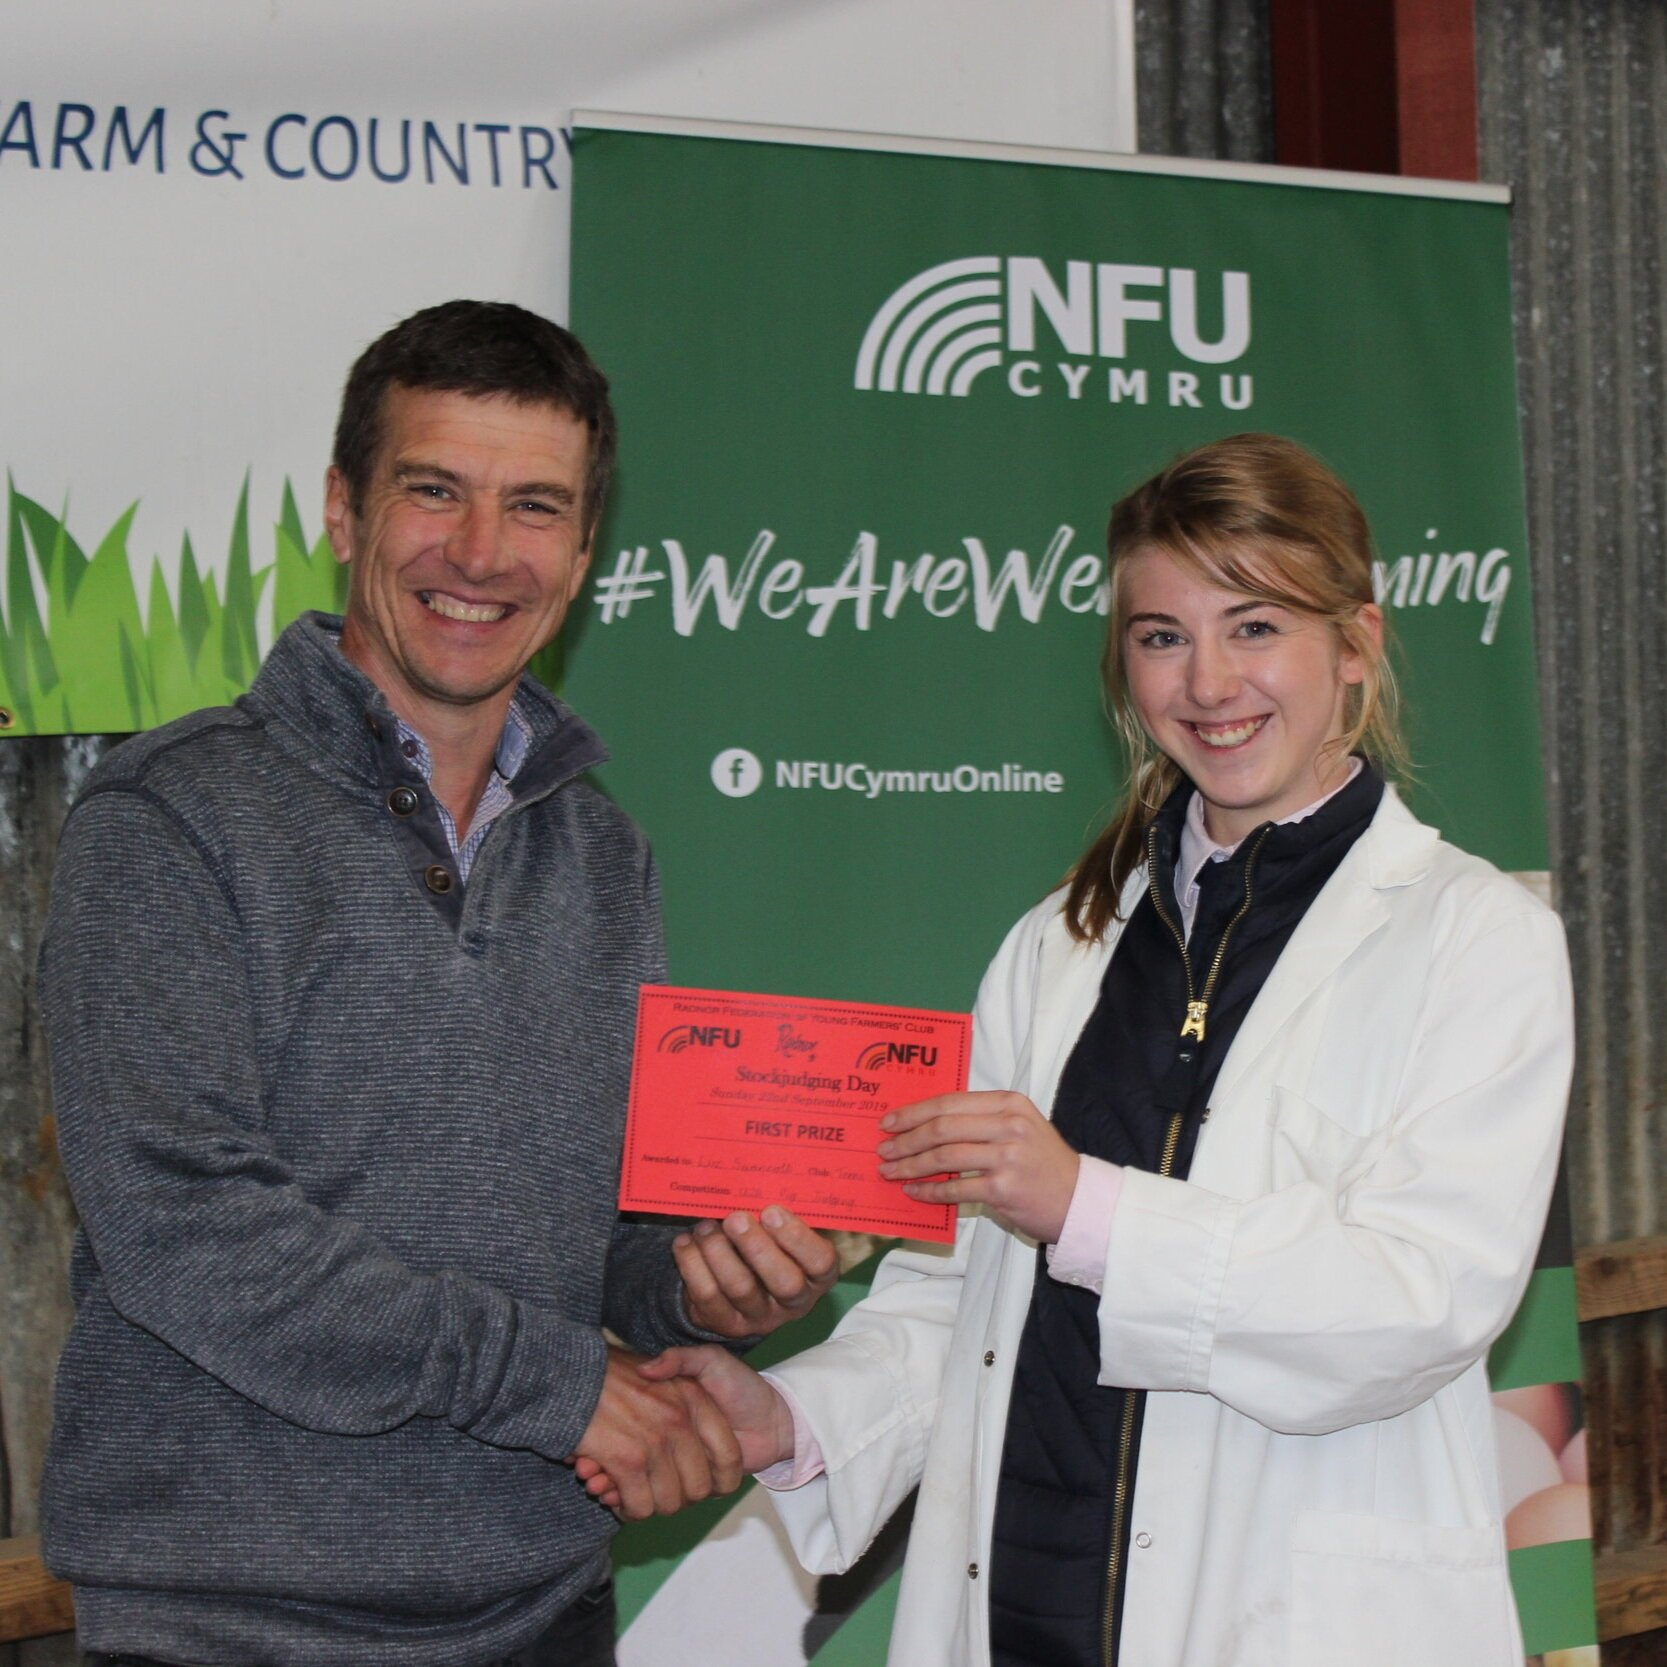 Liz Swancott, Teme Valley YFC - joint 1st place in the Senior Pig with Mark Watson.